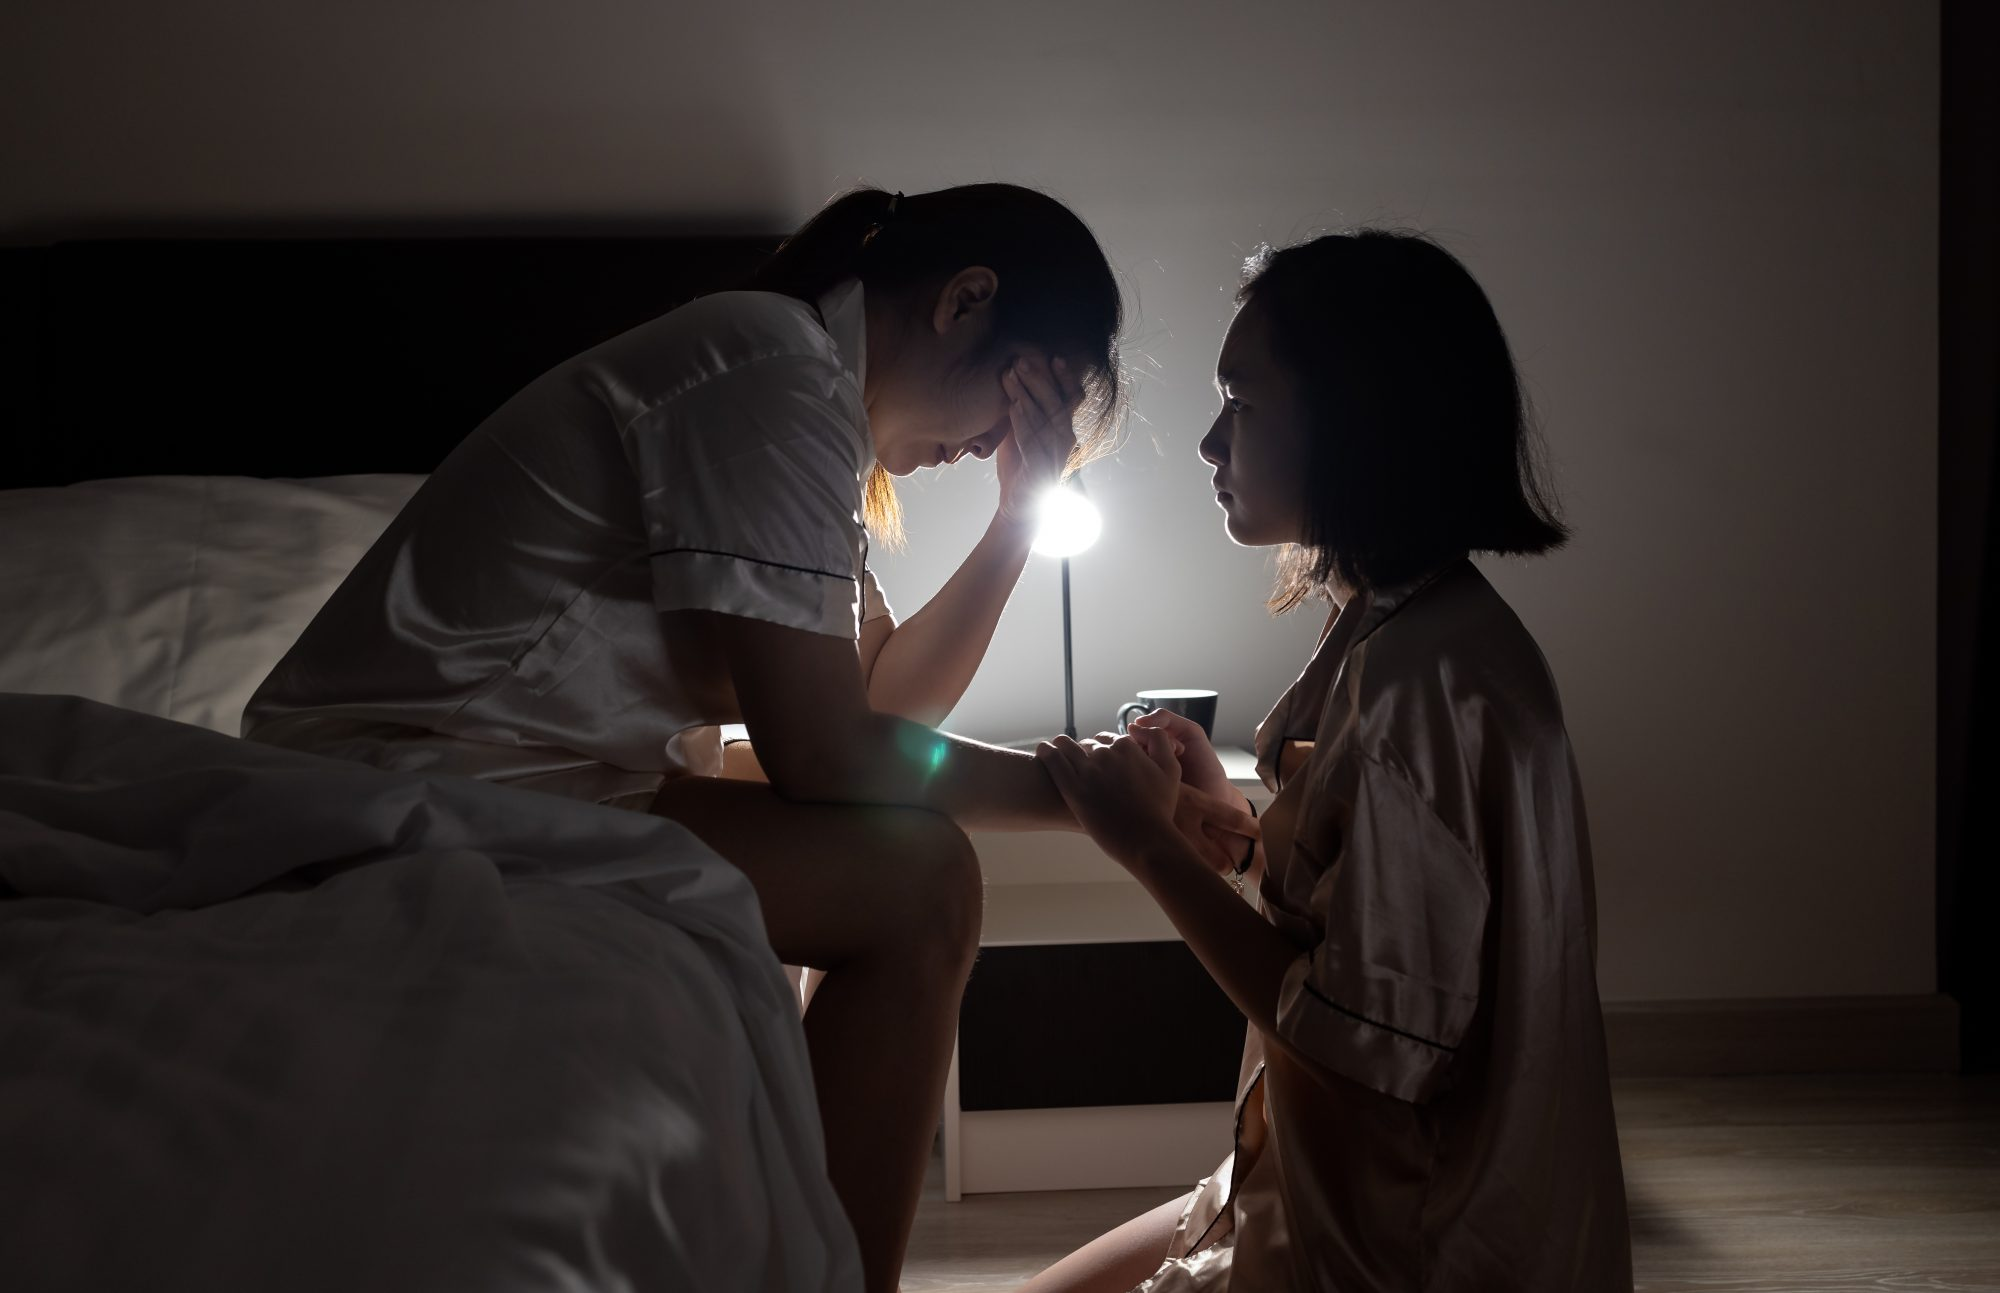 www.openaccessgovernment.org: Racial prejudice: Why Asian Americans are still blamed for COVID-19